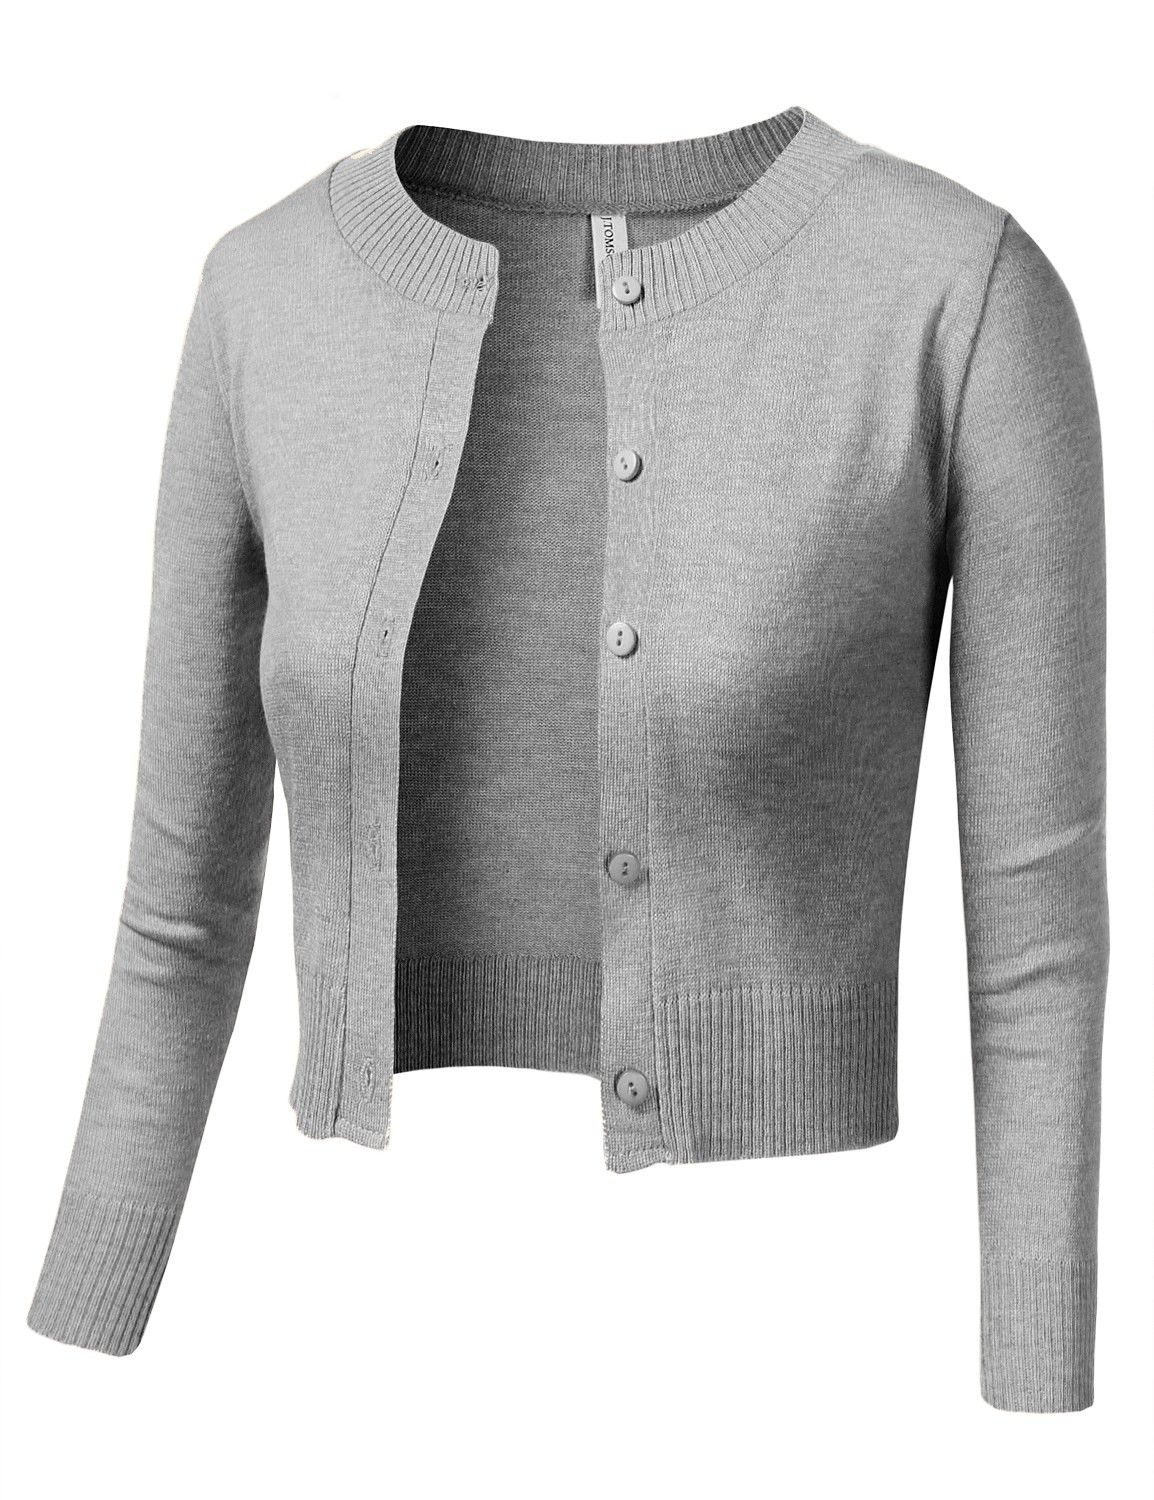 Jtomson - Freedom of Fashion - Womens Basic Short And Long Sleeve ...